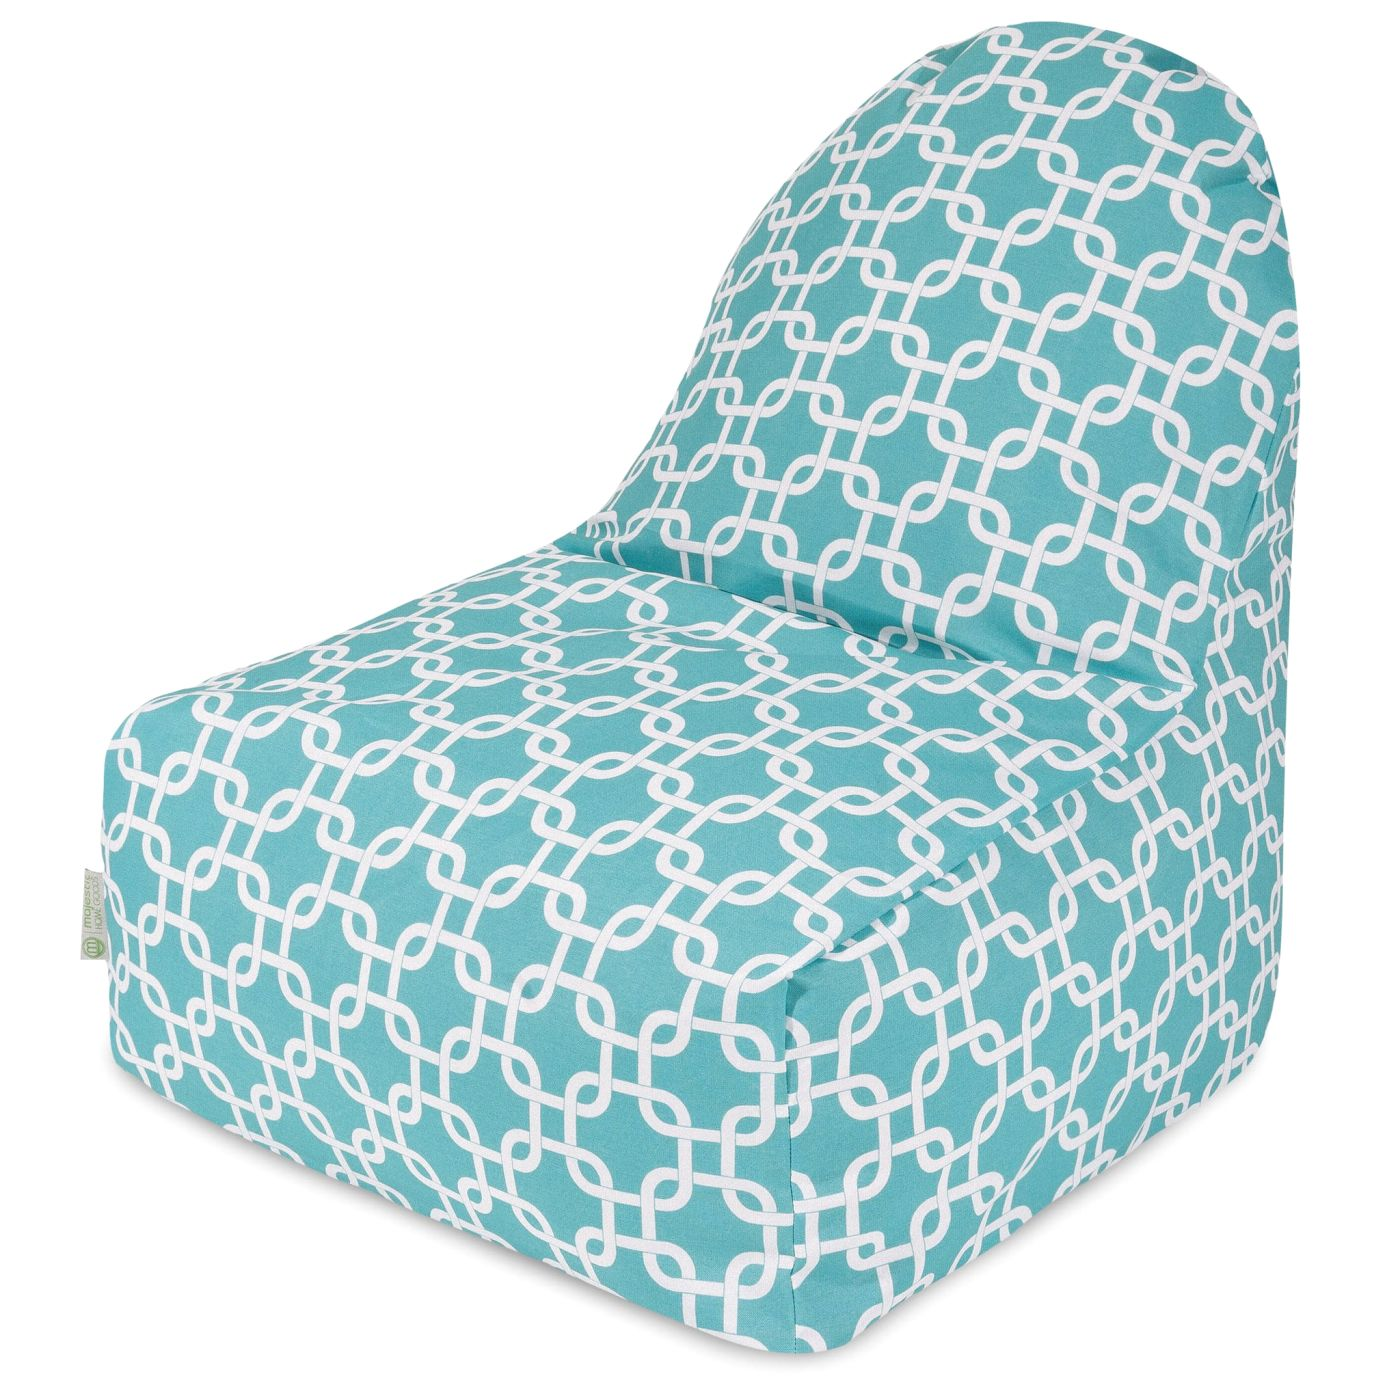 buy majestic home 85907251034 teal links kick it chair at contemporary furniture warehouse. Black Bedroom Furniture Sets. Home Design Ideas